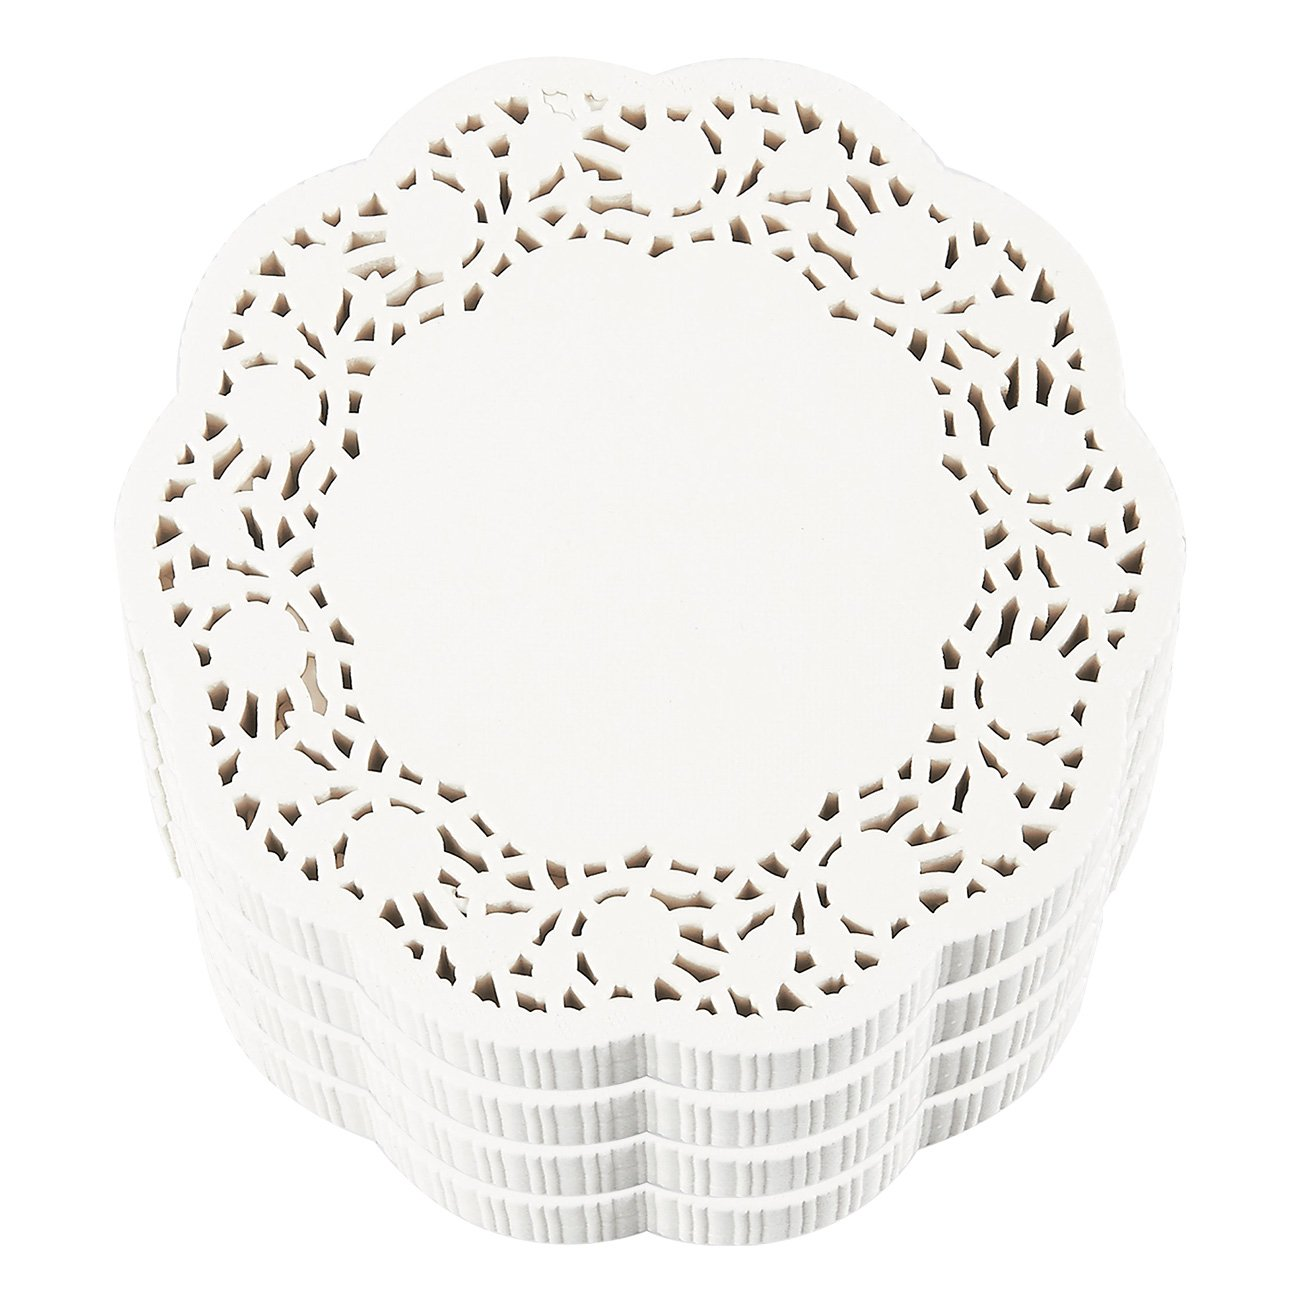 Paper Doilies – 1000-Pack Round Lace Placemats for Cakes, Desserts, Baked Treat Display, Ideal for Weddings, Formal Event Decoration, Tableware Decor, White - 5 Inches in Diameter